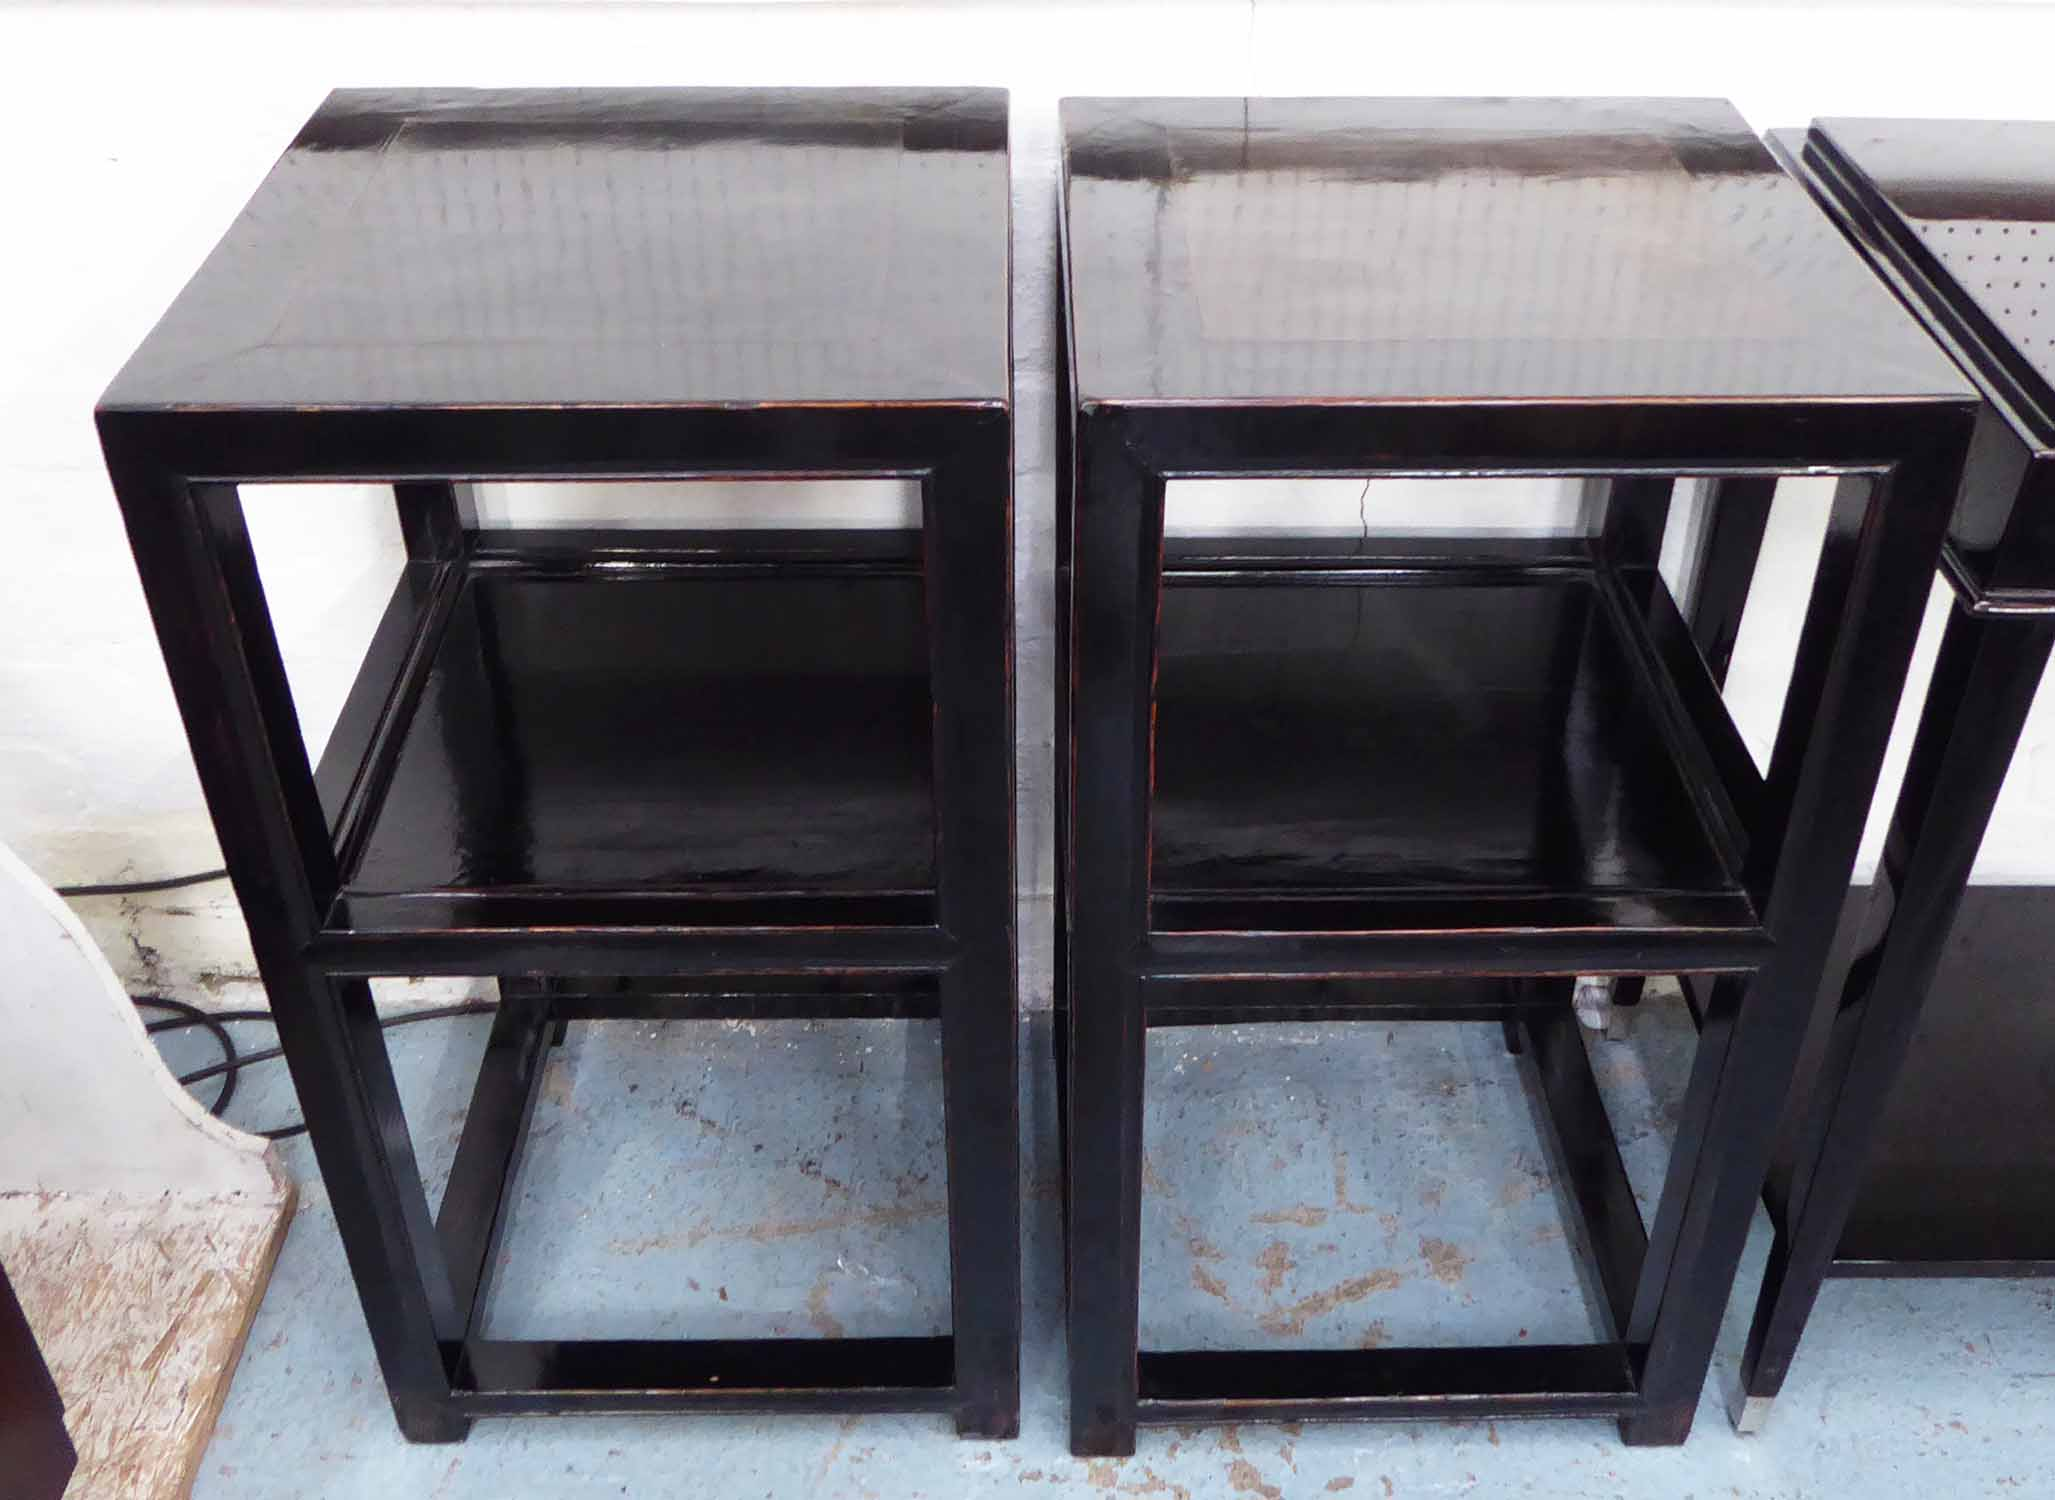 Lot 39 - CHINESE PLANTER STANDS, two, ebonised wood with a shelf, 44cm x 44cm x 85cm H.